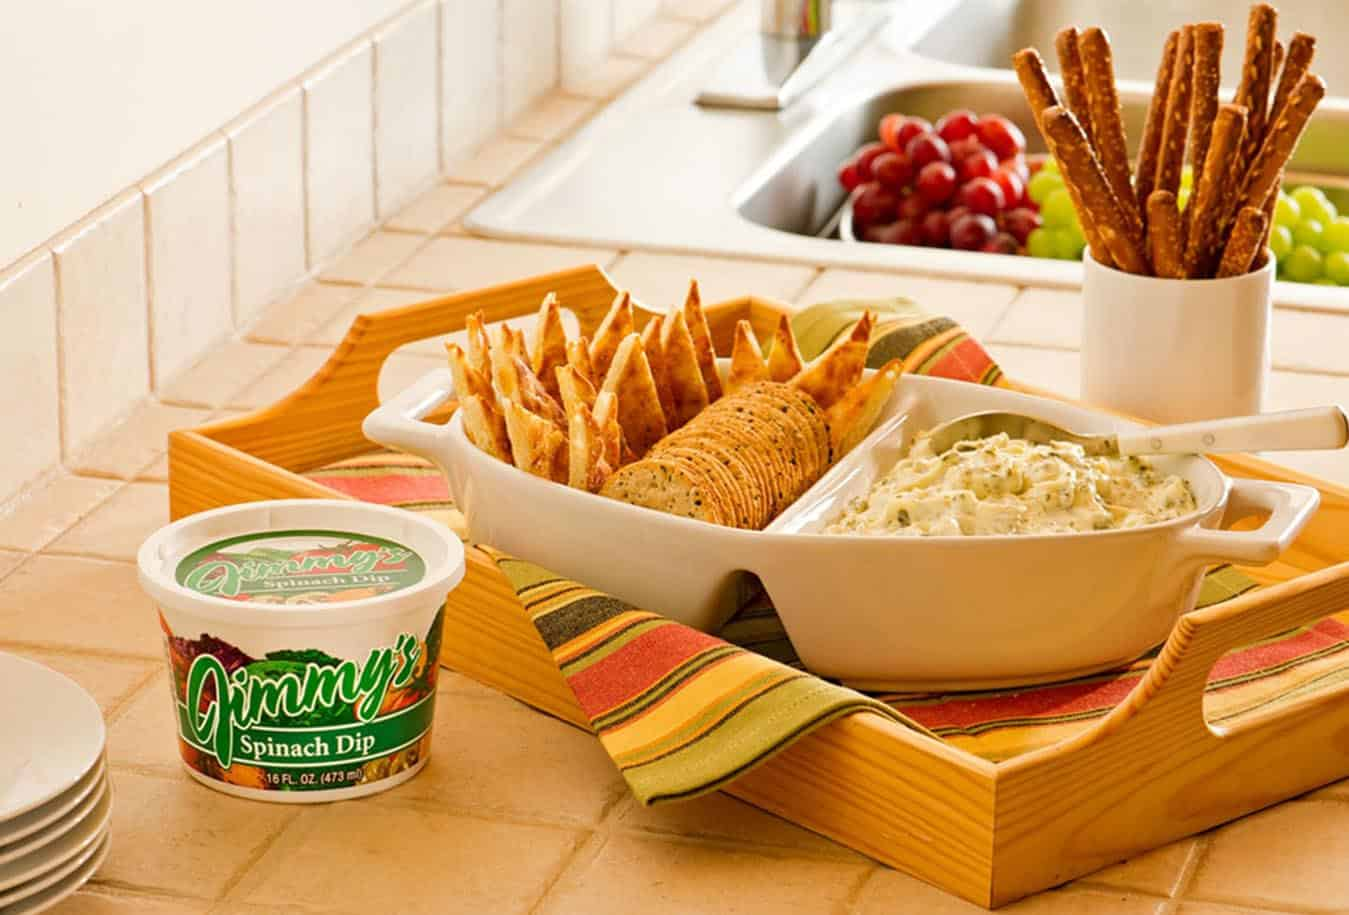 Jimmy's Spinach Vegetable Dip